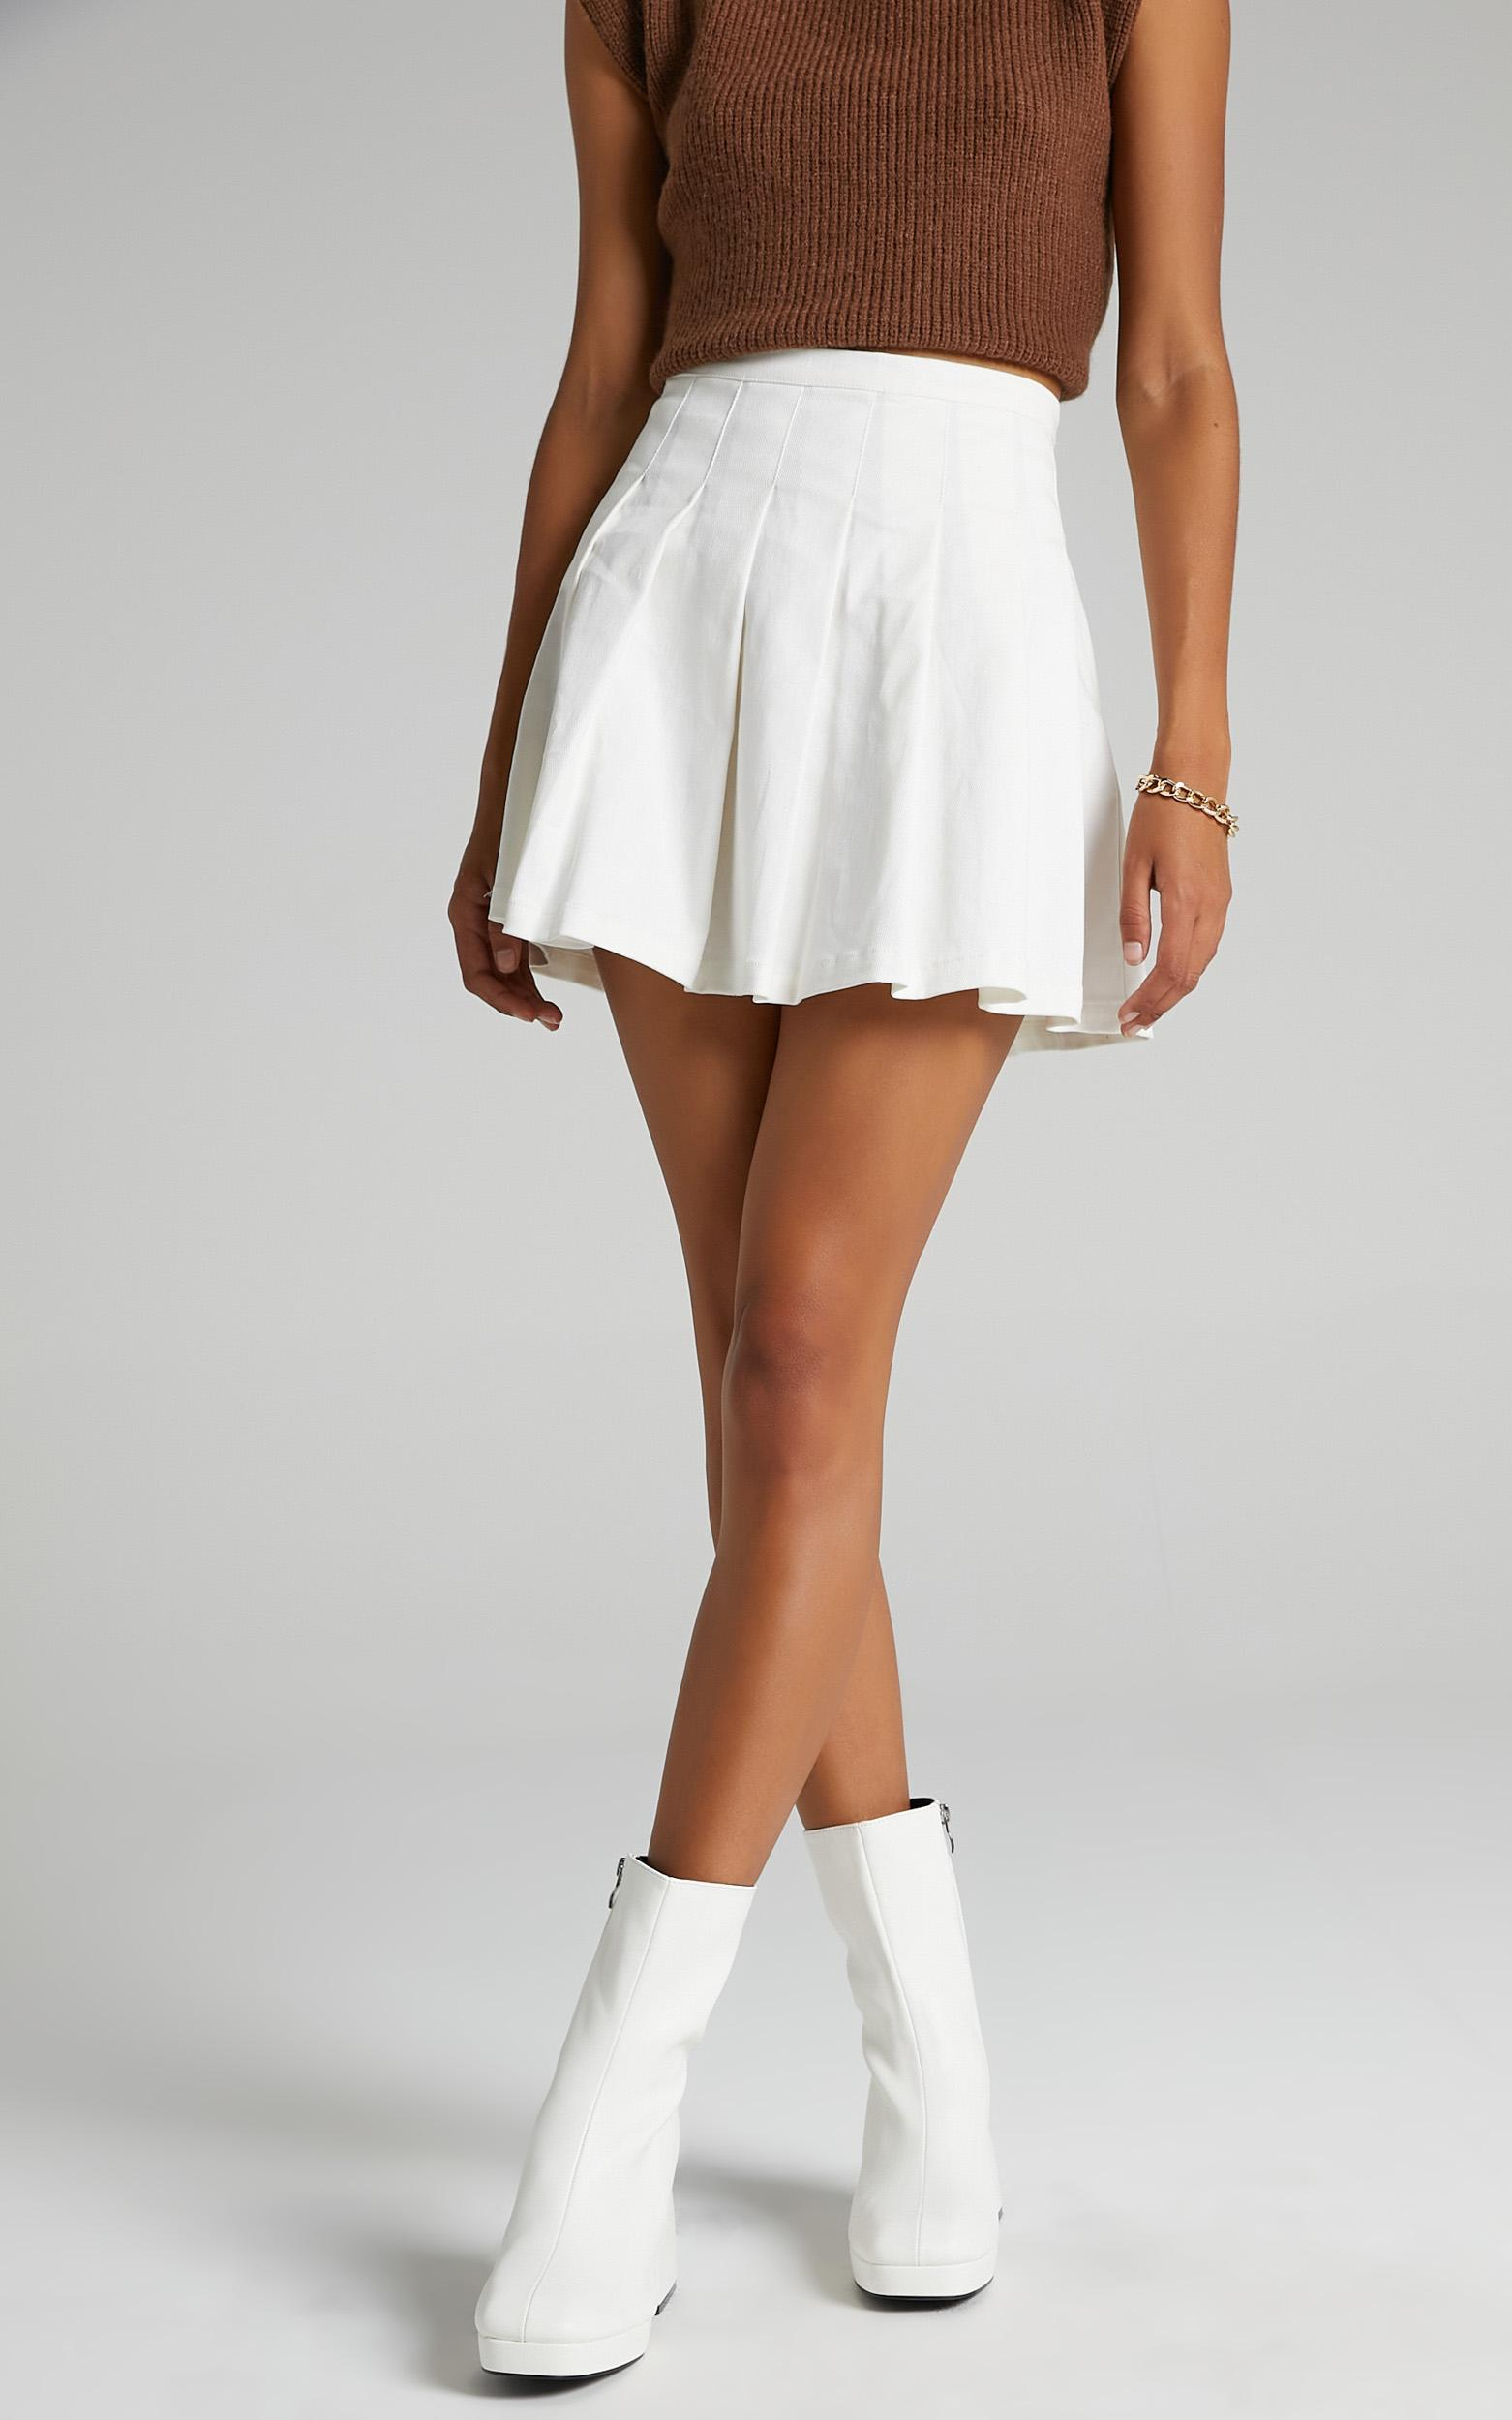 Public Desire - Imagine Boots in White - 5, White, hi-res image number null